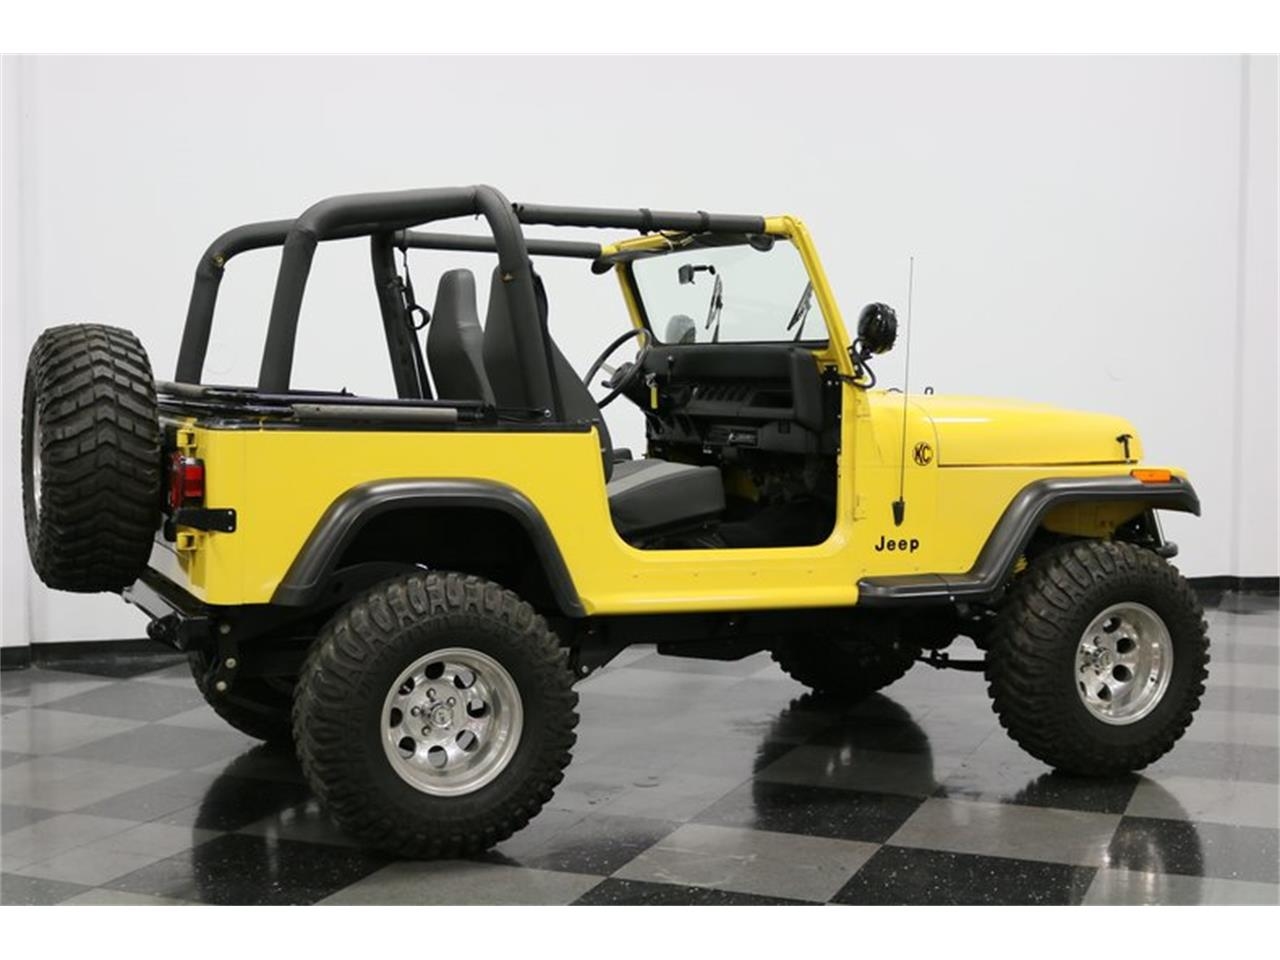 Large Picture of '93 Jeep Wrangler located in Ft Worth Texas - $25,995.00 Offered by Streetside Classics - Dallas / Fort Worth - P701